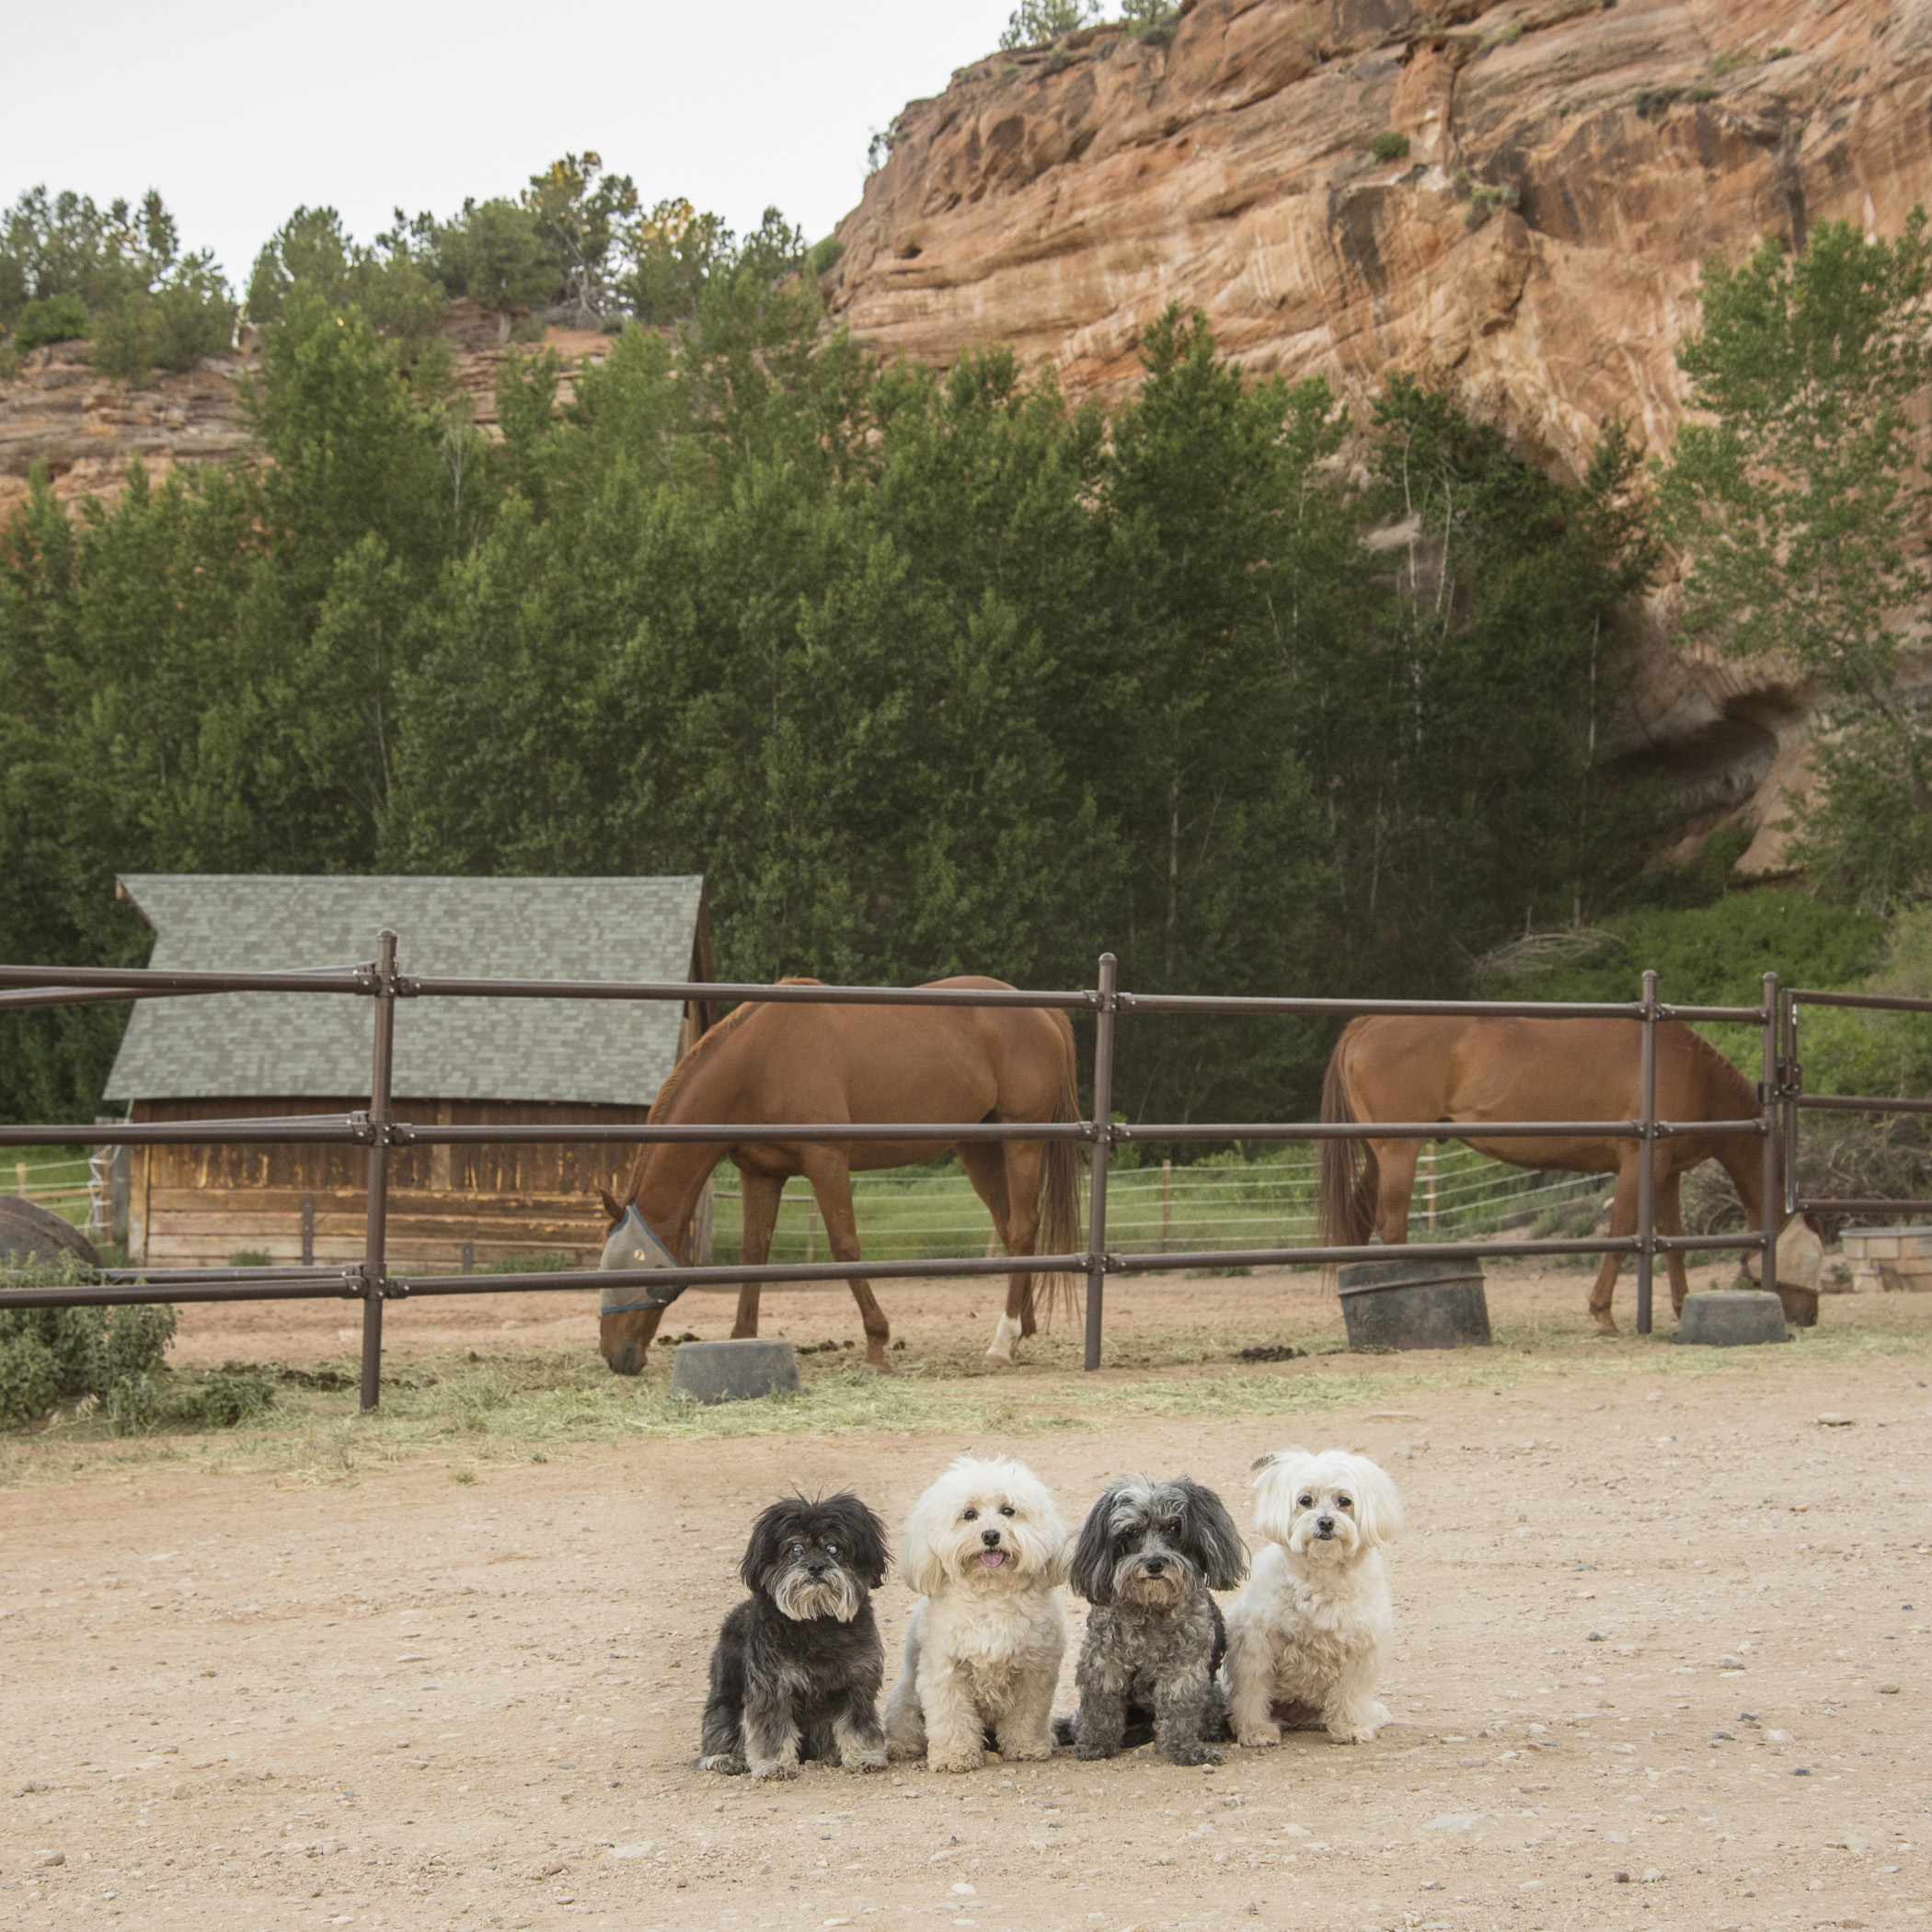 We saved the biggest for last…the horses, of course! Their poop is bigger than us! Any volunteers for that job?? At Horse Haven you can work with horses, goats and even sheep. If you're a farm animal lover, this is the area for you! And, of course, many of these beautiful creatures are available for adoption…to the right home, of course!